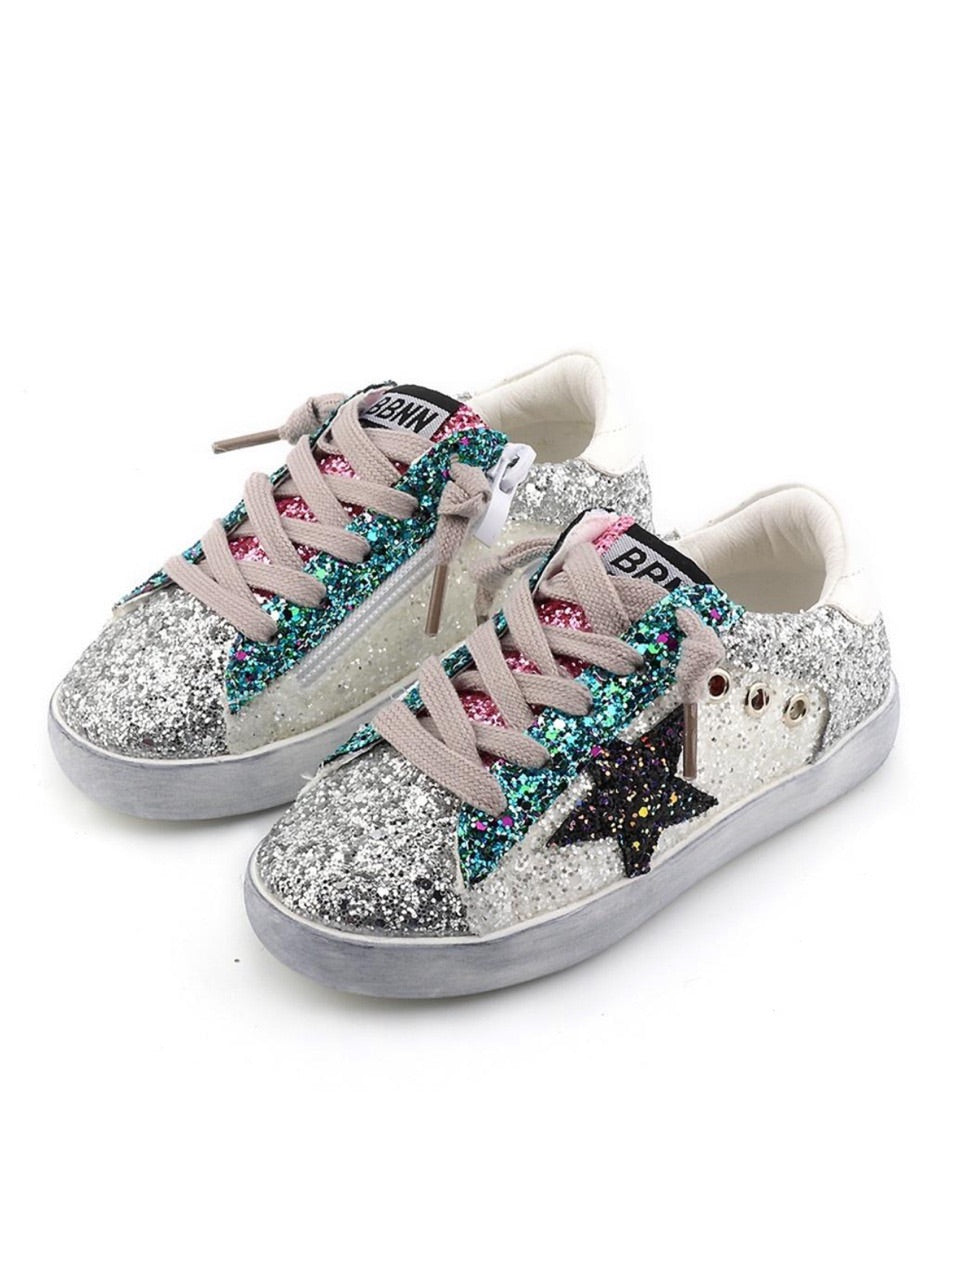 Lola And The Boys Star Glitter Sneakers